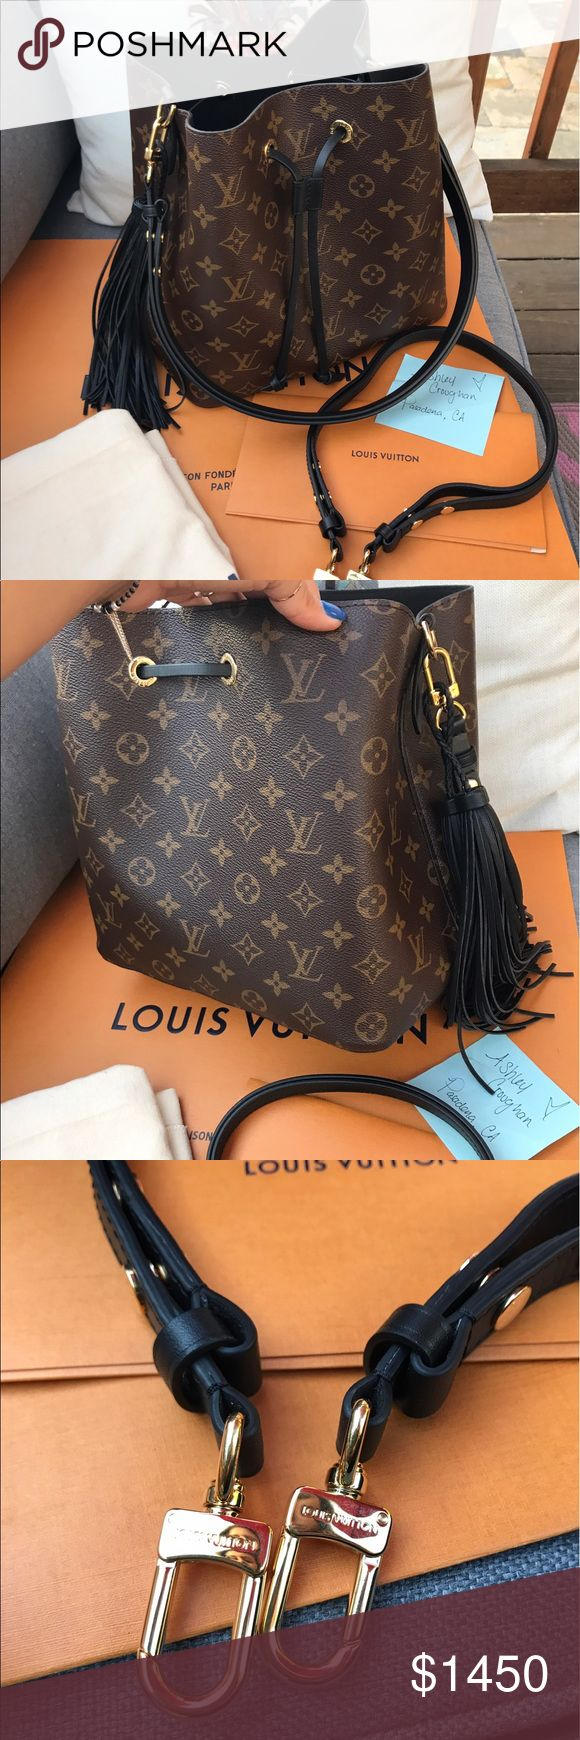 Louis Vuitton Neo Noe ️ay ️al ONLY Black Noir with Monogram  print. This beauty was purchased in February of this year. Comes with original receipt.. dust bag.. AND extra authentic Louis Vuitton strap.. can be used as a crossbody as well. No flaws to mention. tassel may be included as well.. it is NOT Lv. will only accept pa y pal due to fees :/ Louis Vuitton Bags Crossbody Bags